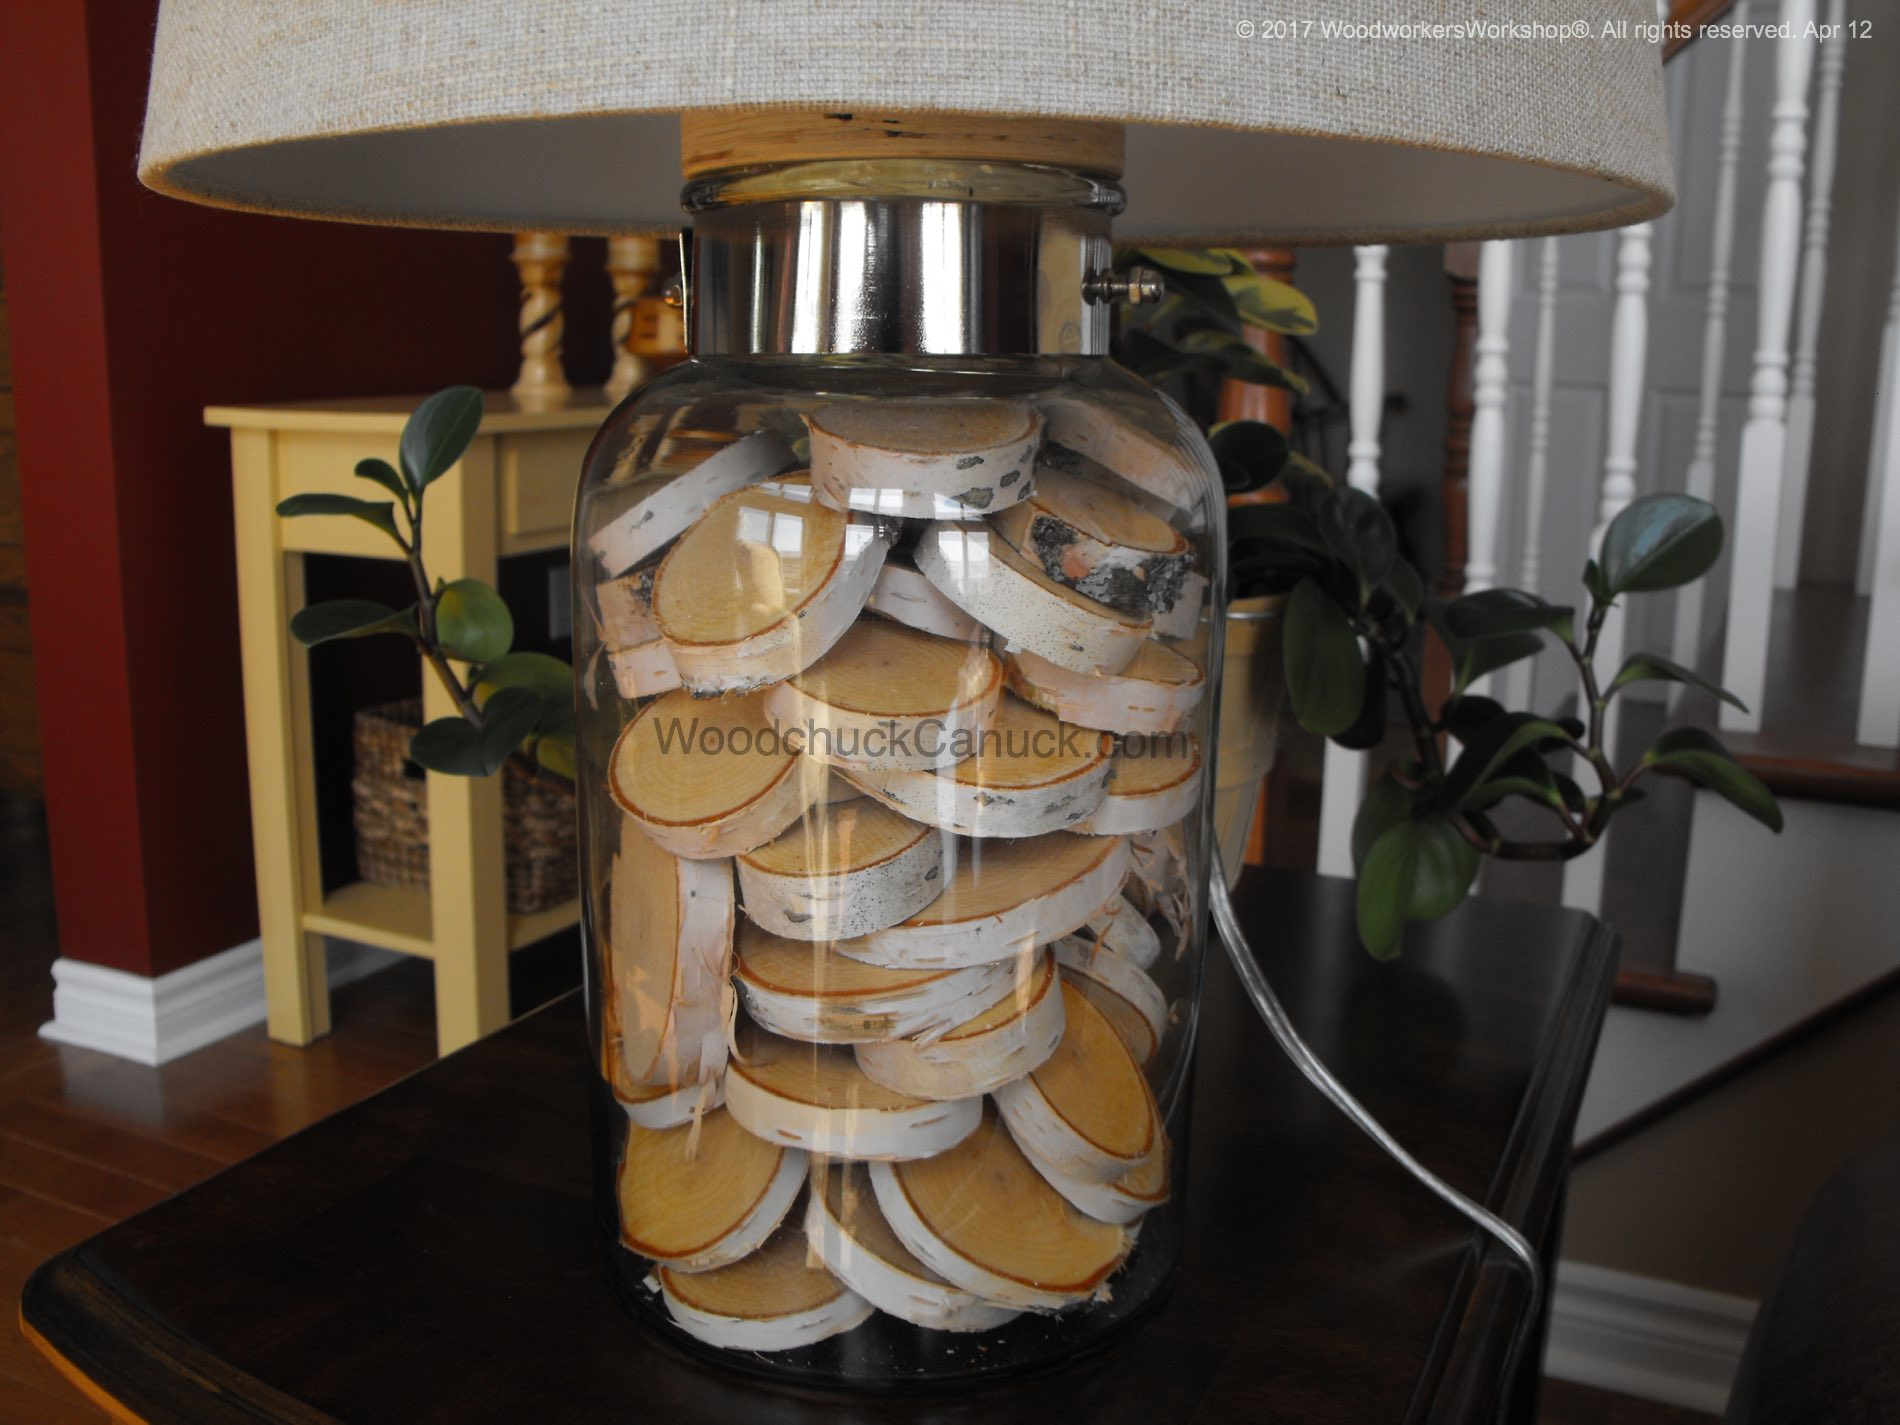 Decorative use of birch slices